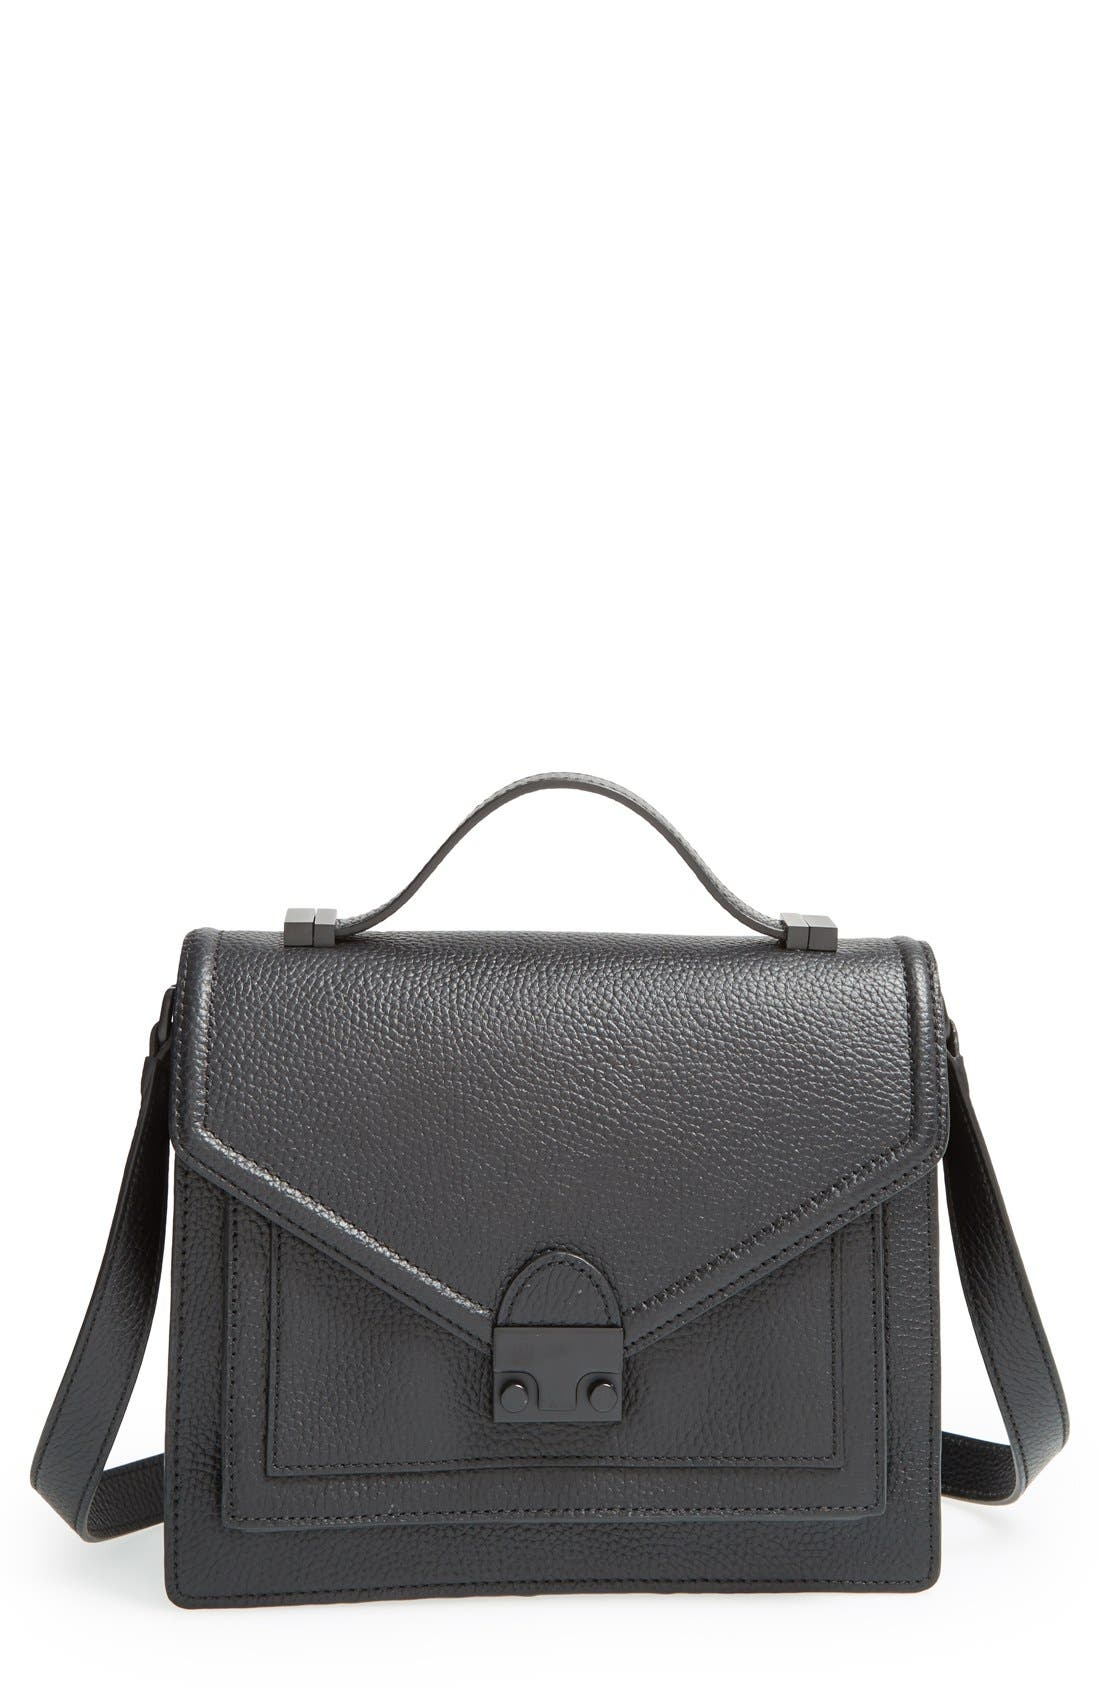 Main Image - Loeffler Randall 'Medium Rider' Leather Top Handle Satchel